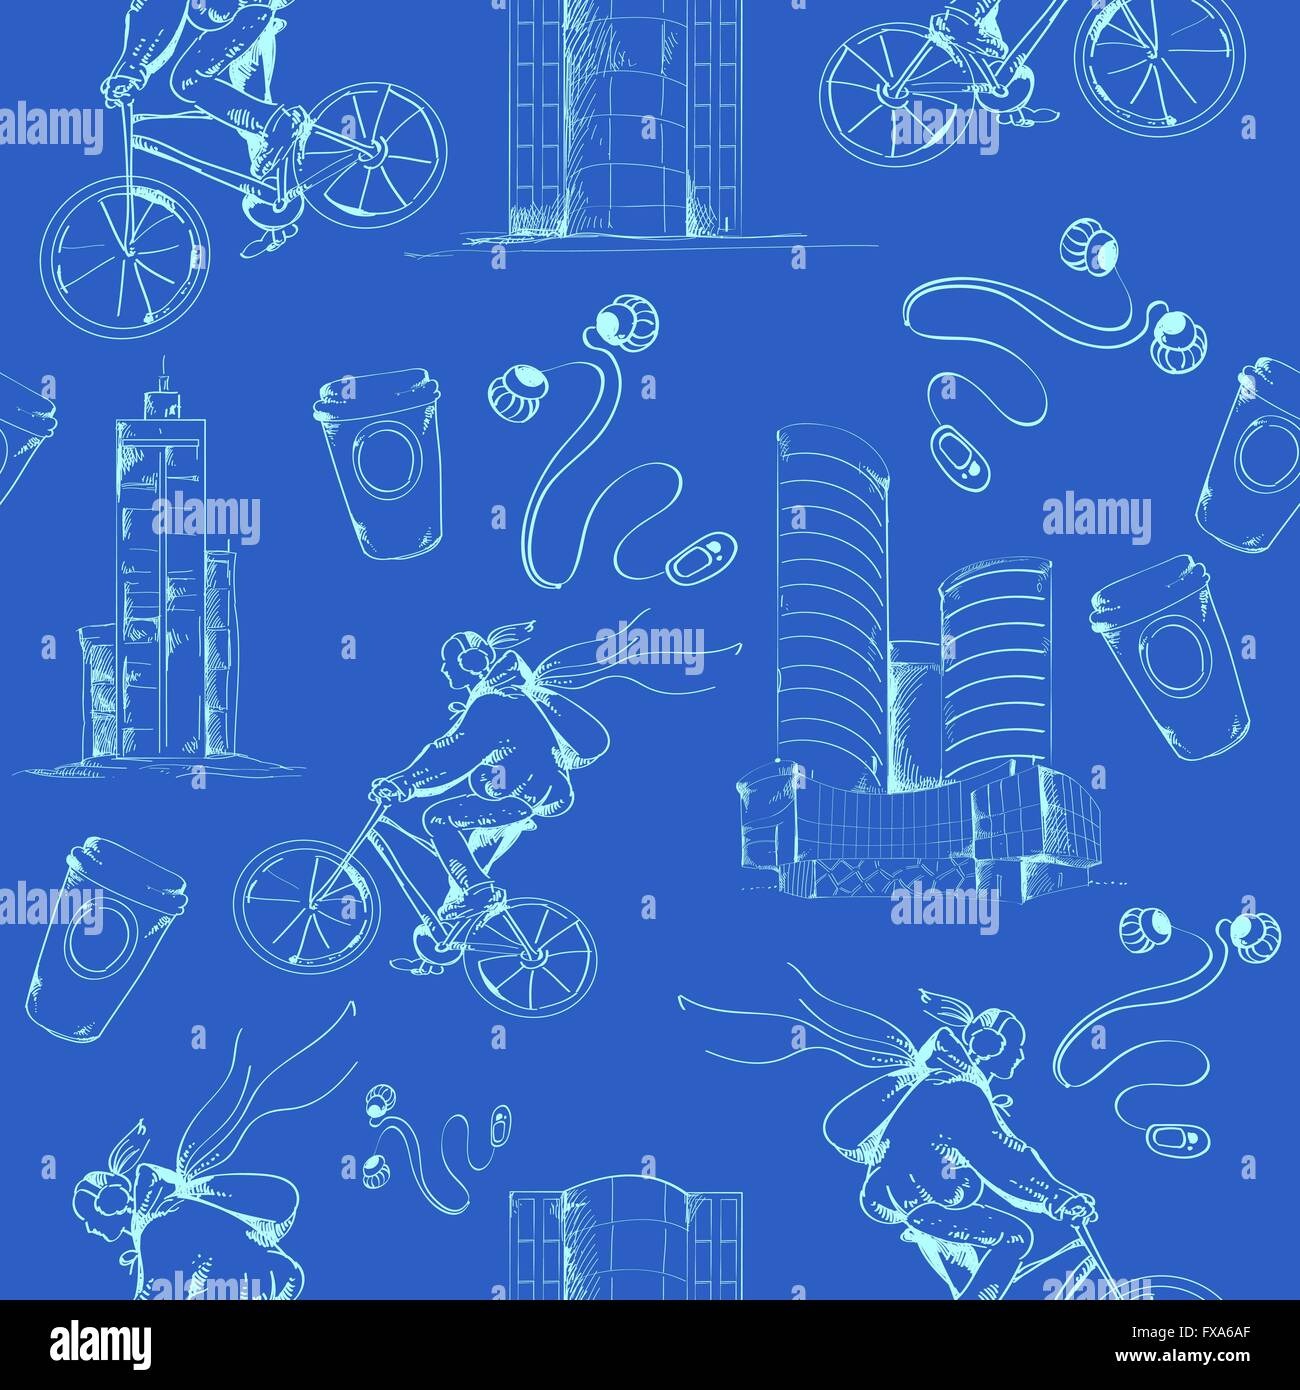 Blueprint city seamless pattern stock vector art illustration blueprint city seamless pattern malvernweather Images